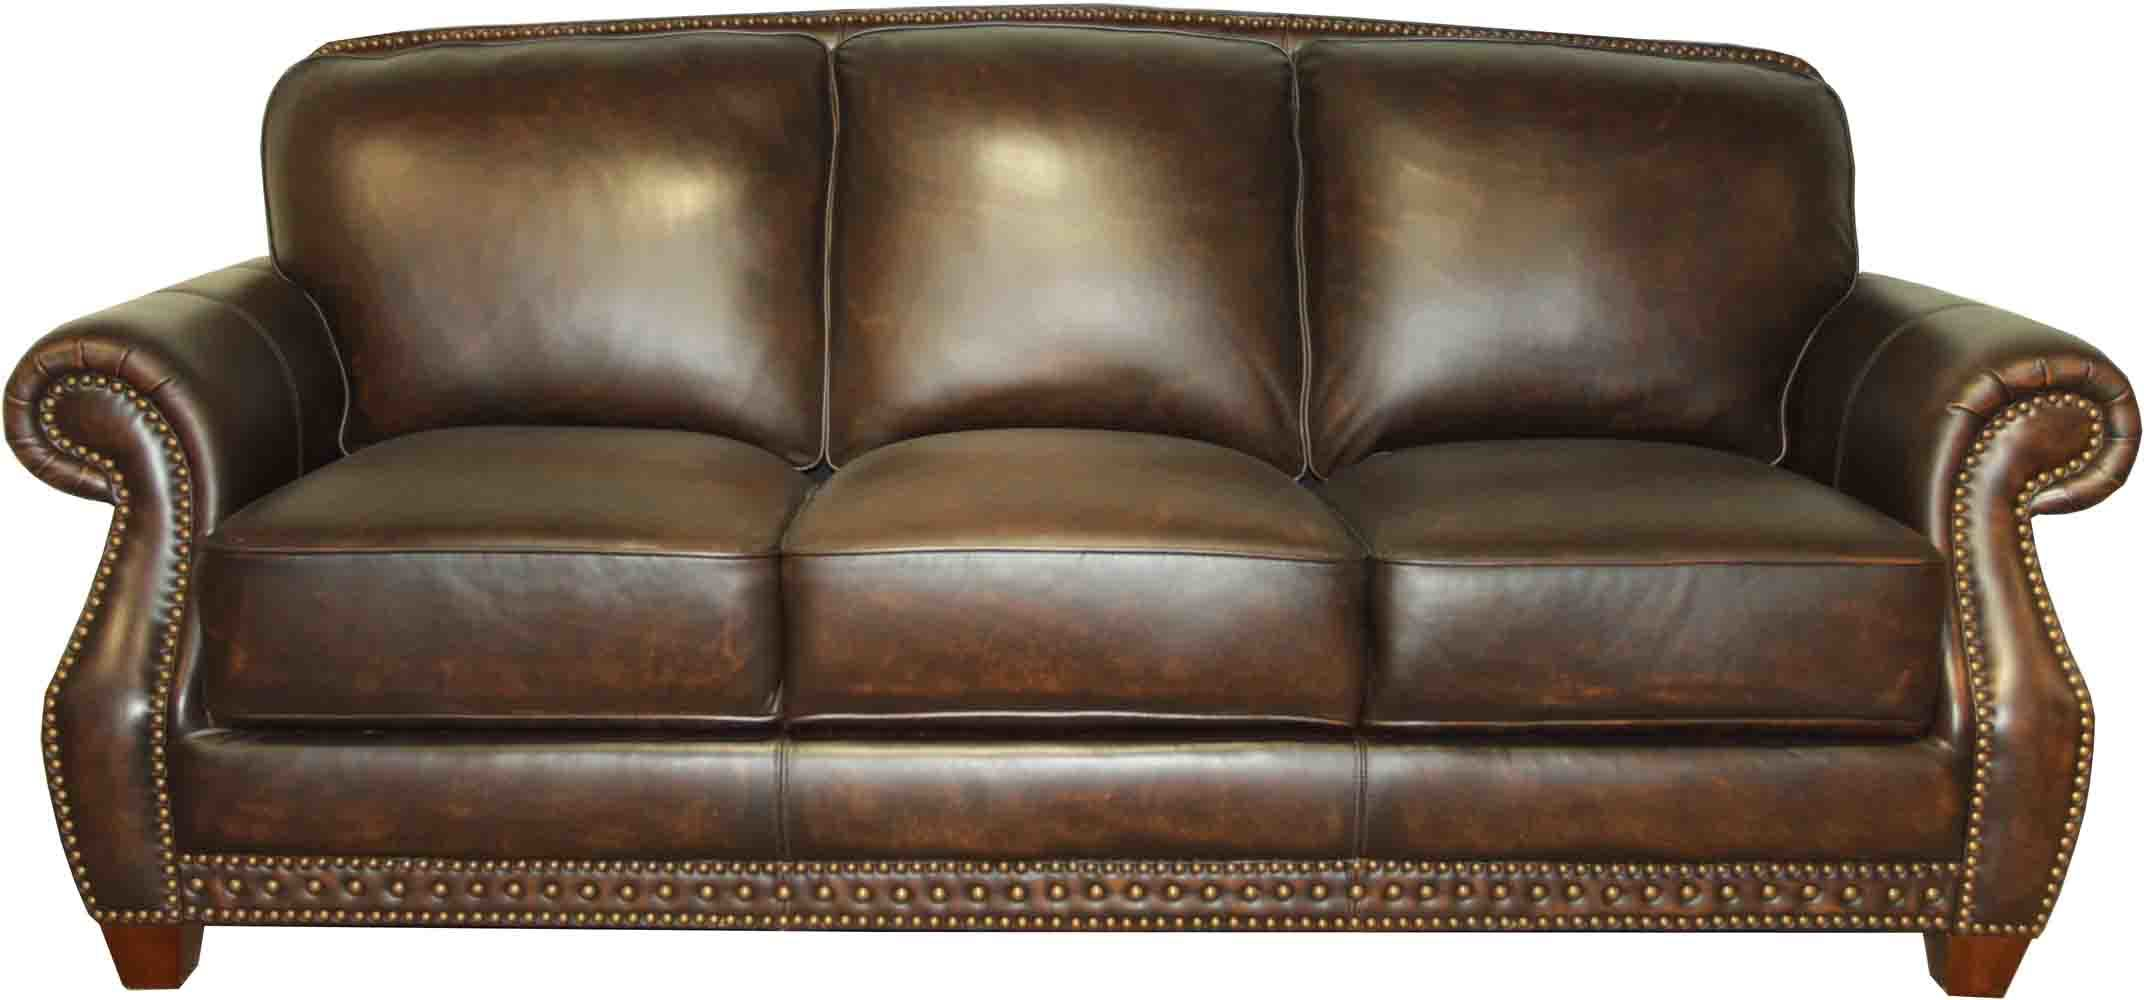 china leather sofa cm5002 china hand rub leather sofa ForFurniture Leather Sofa